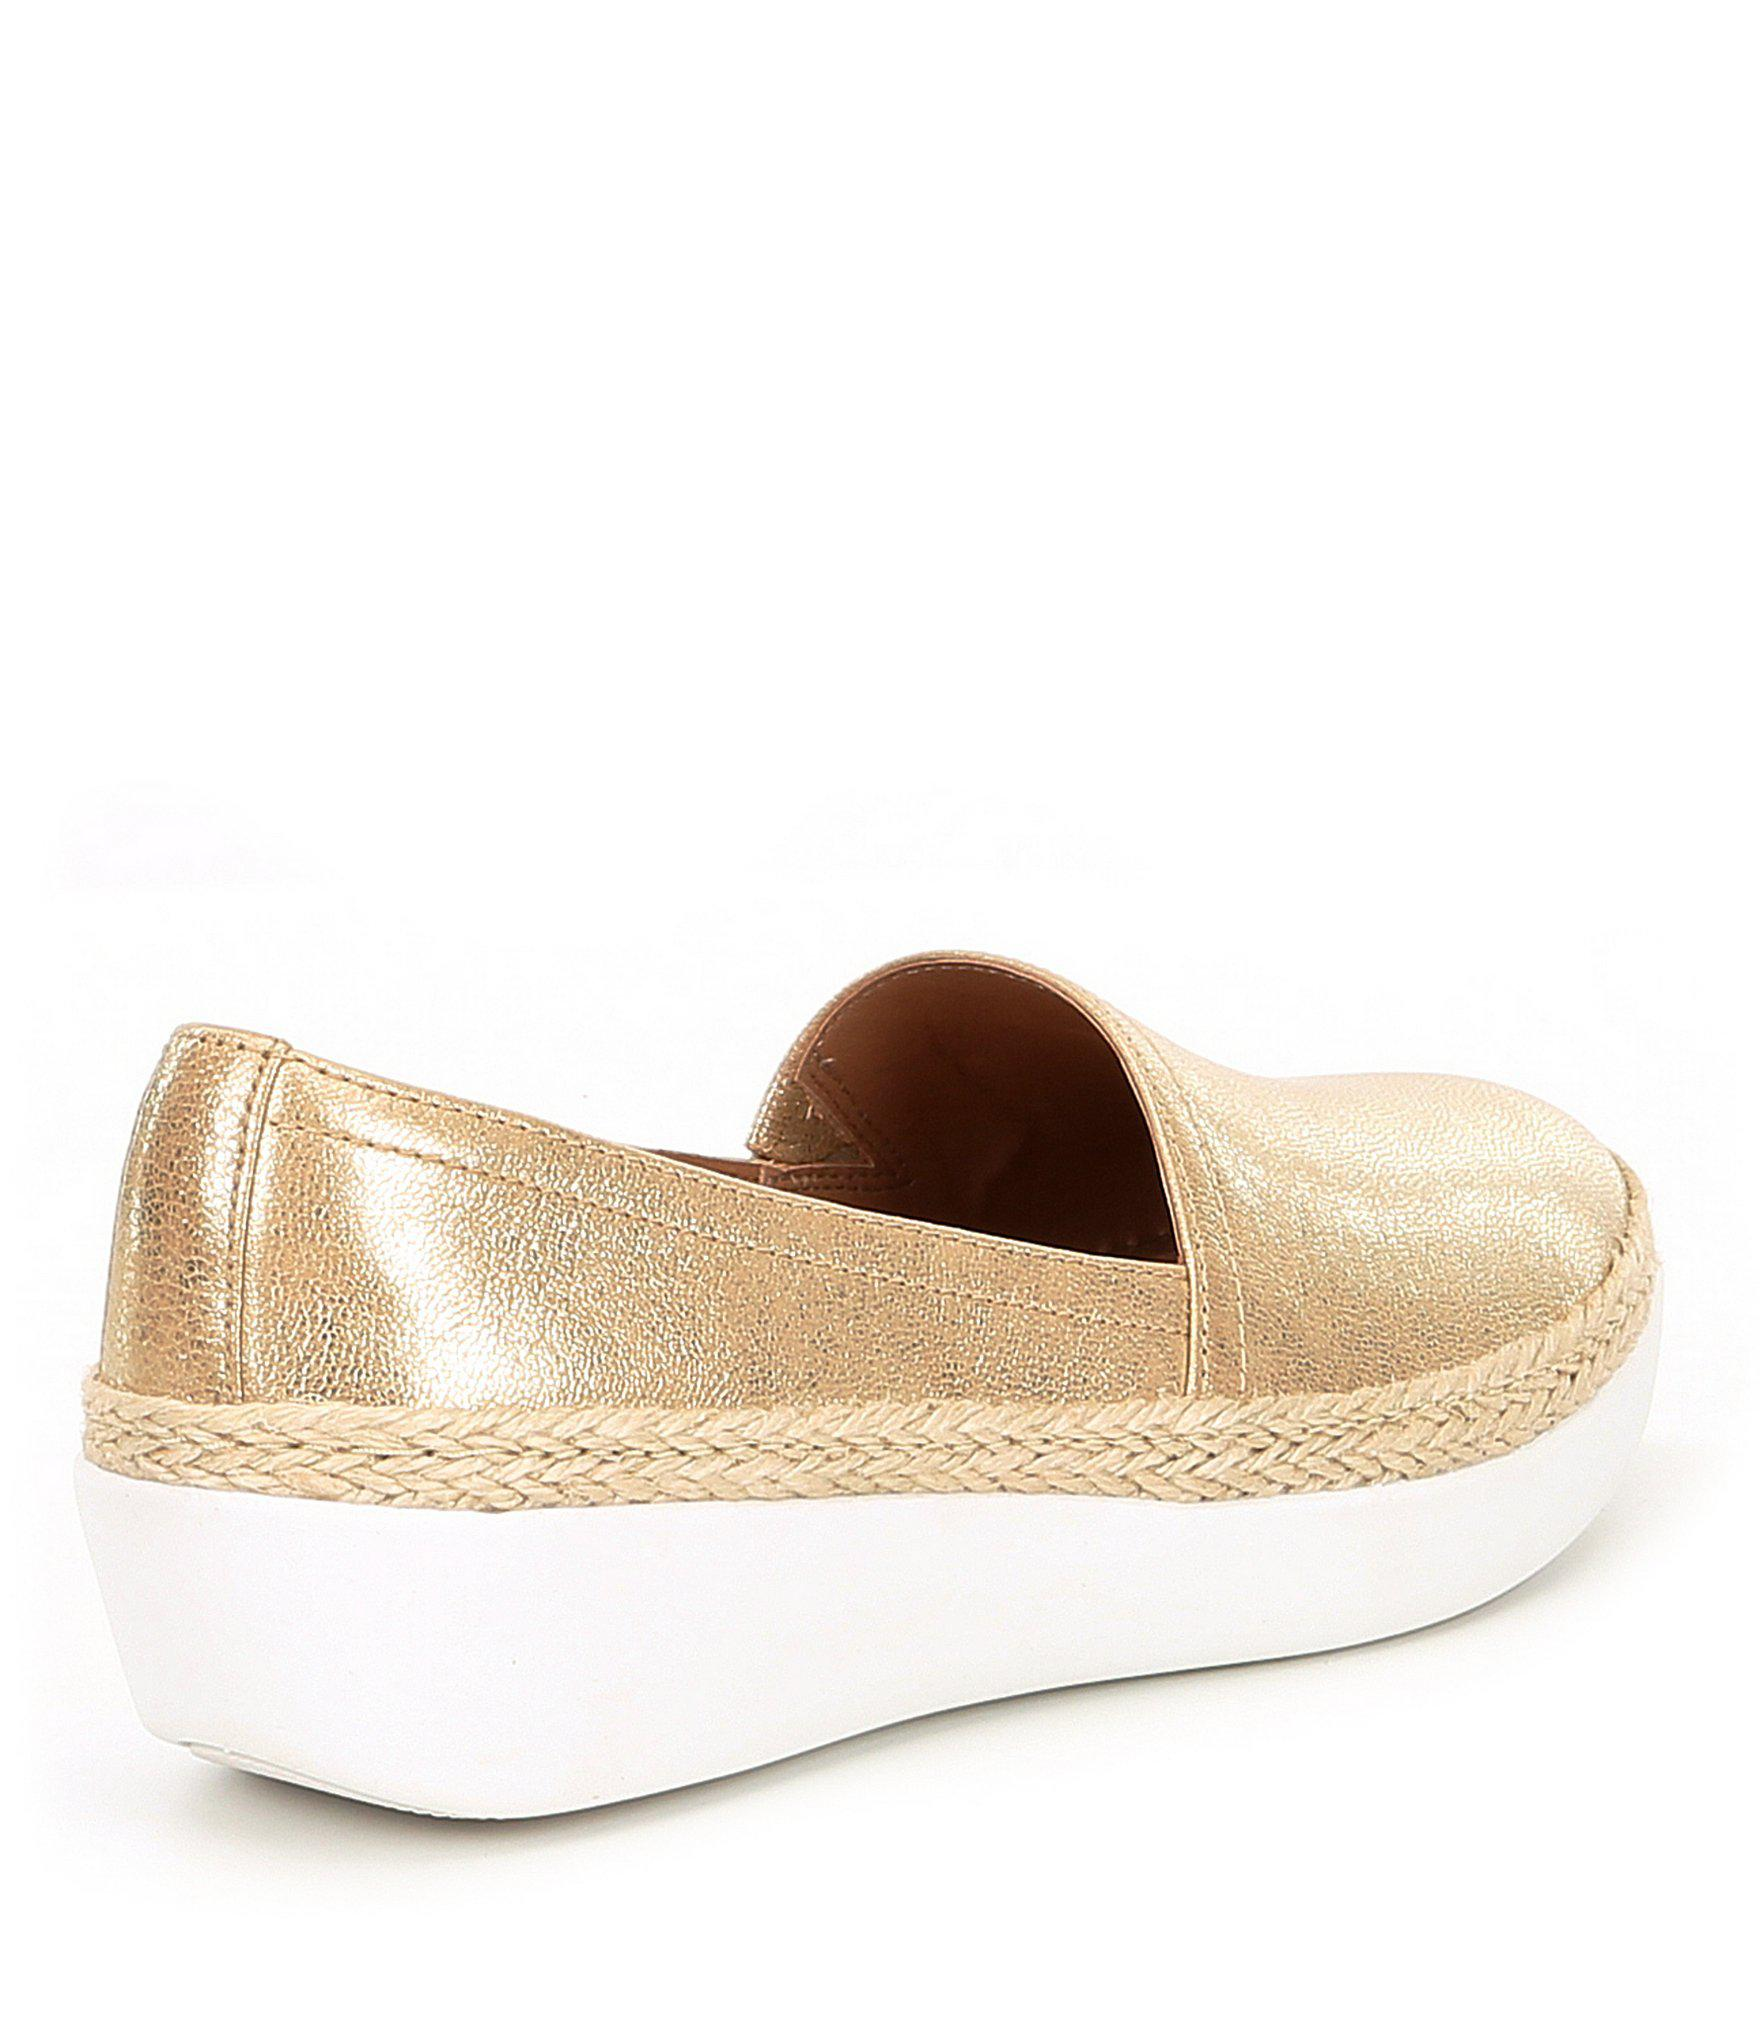 e2d395af505b Lyst - Fitflop Casa Metallic Leather Slip-on Loafers in Metallic